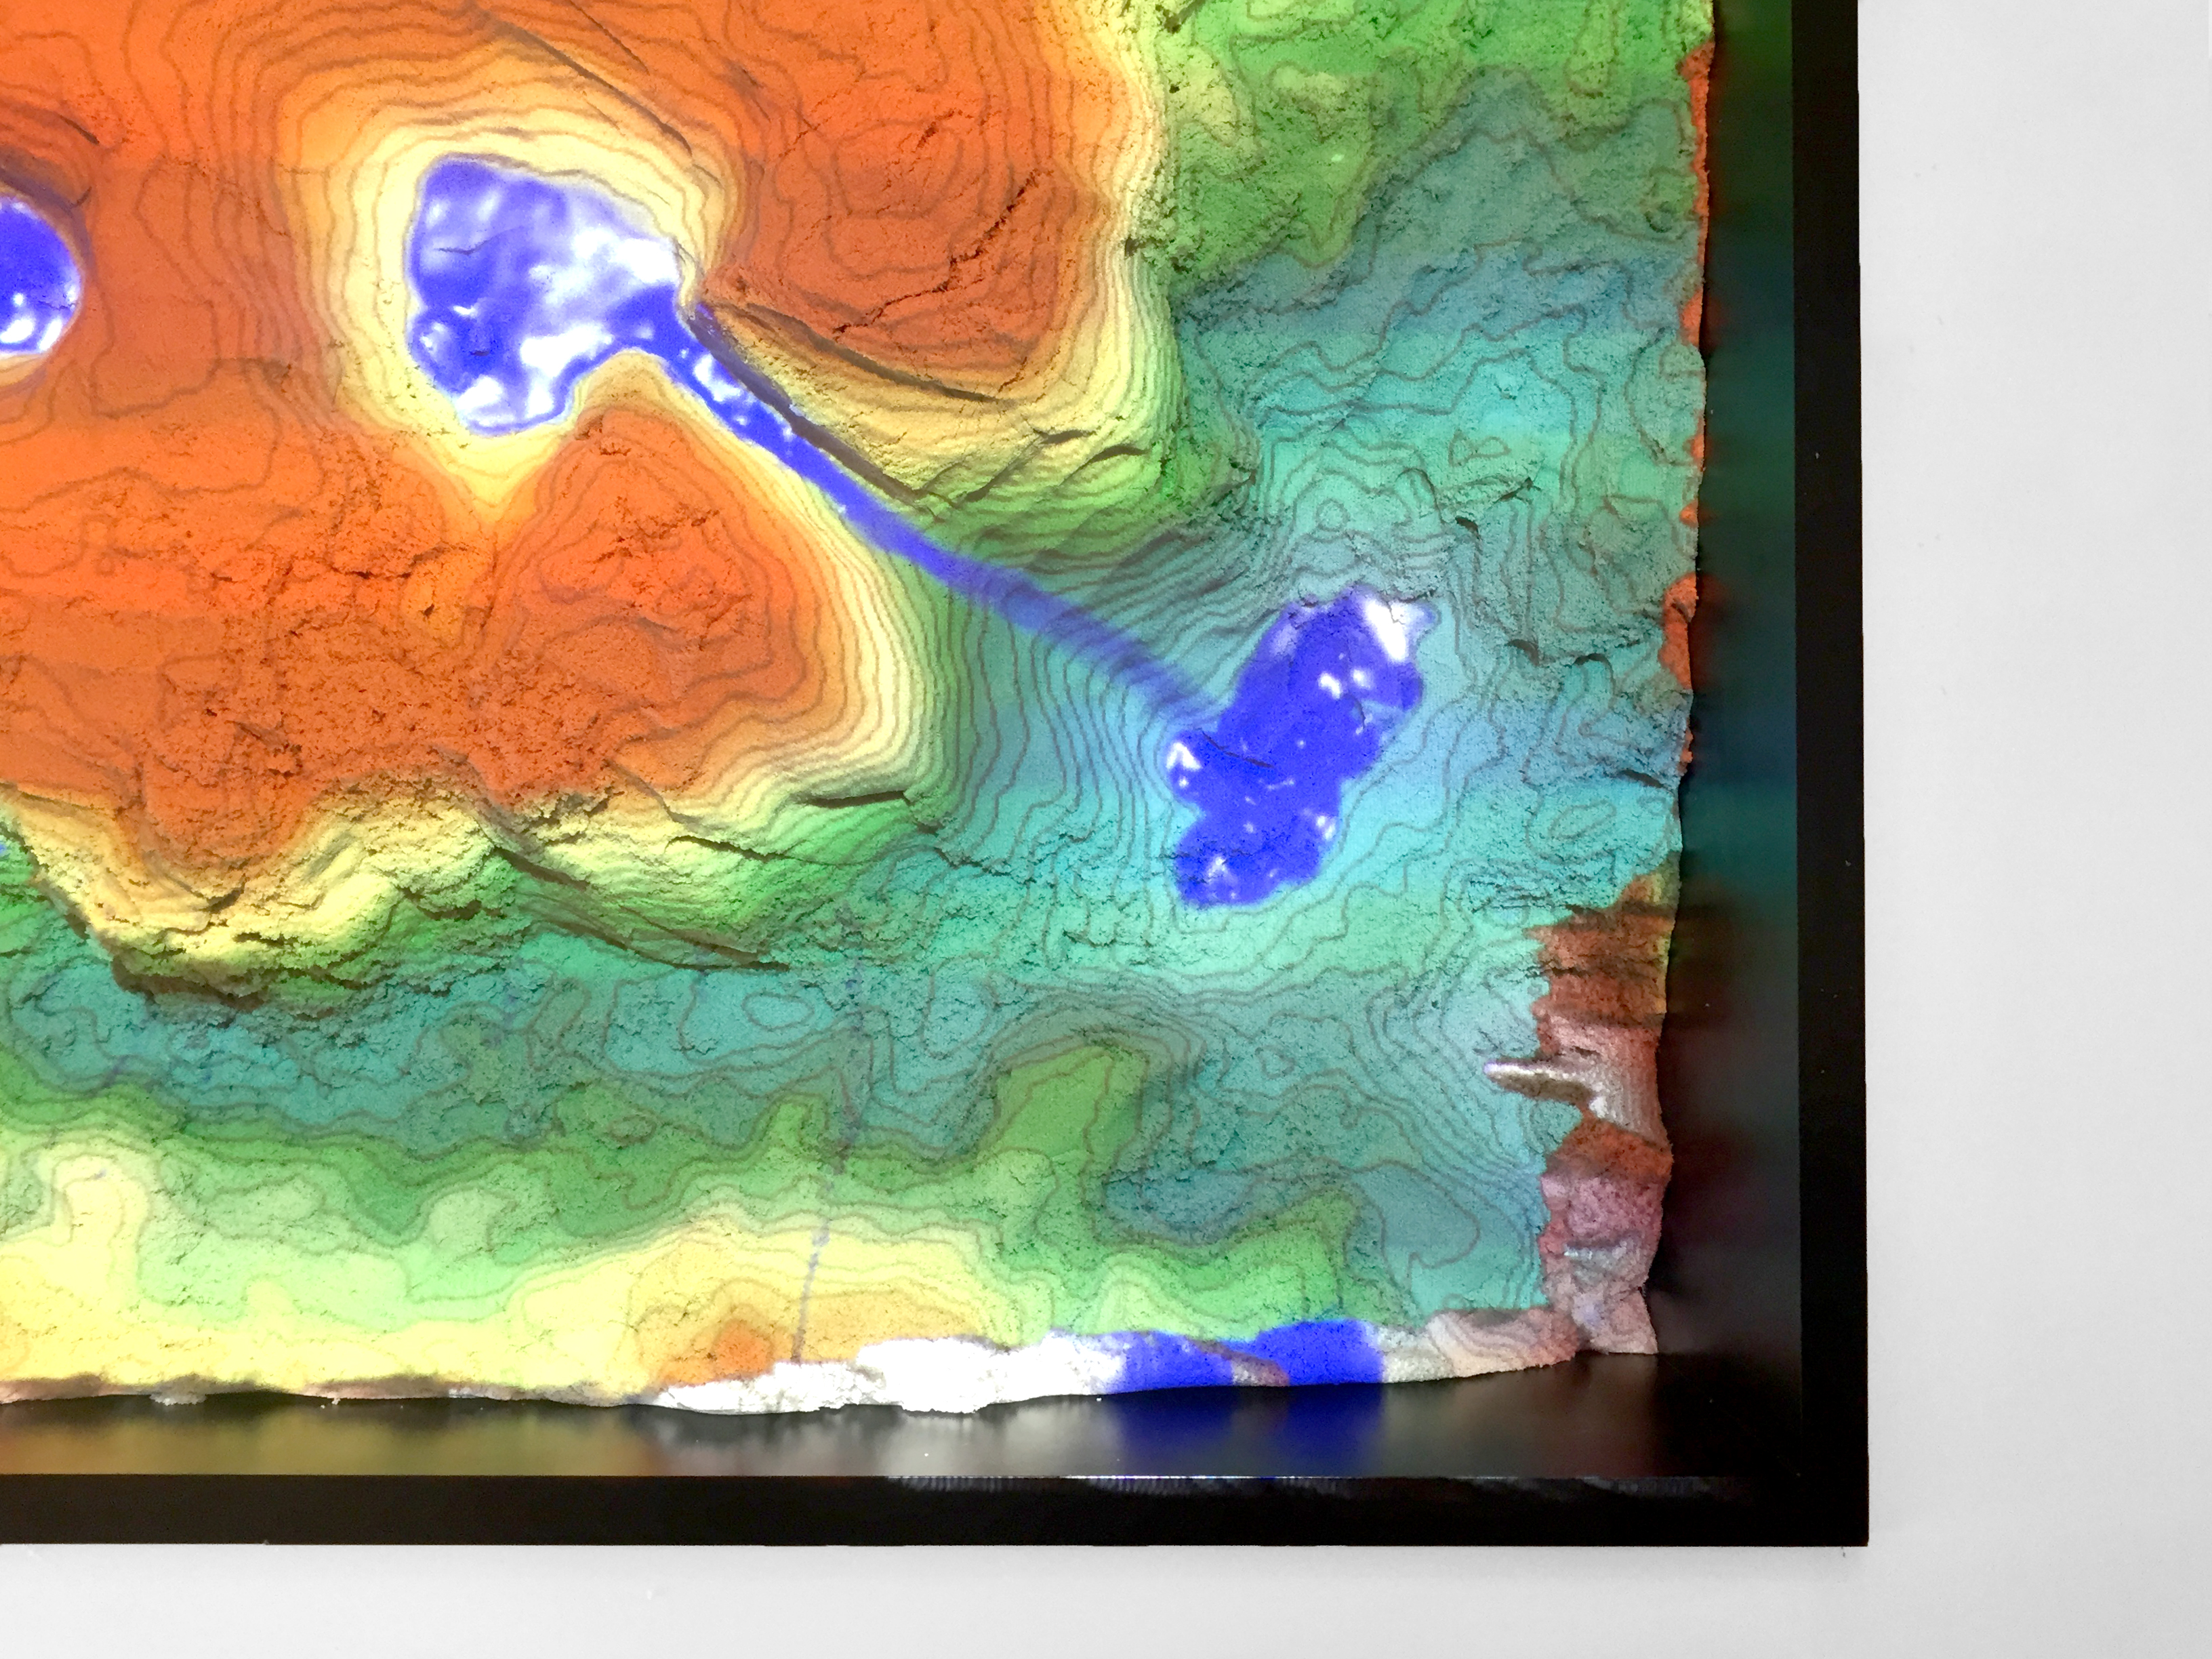 With the Augmented Reality Sandbox, playing with sand is a lot of fun for adults, too.